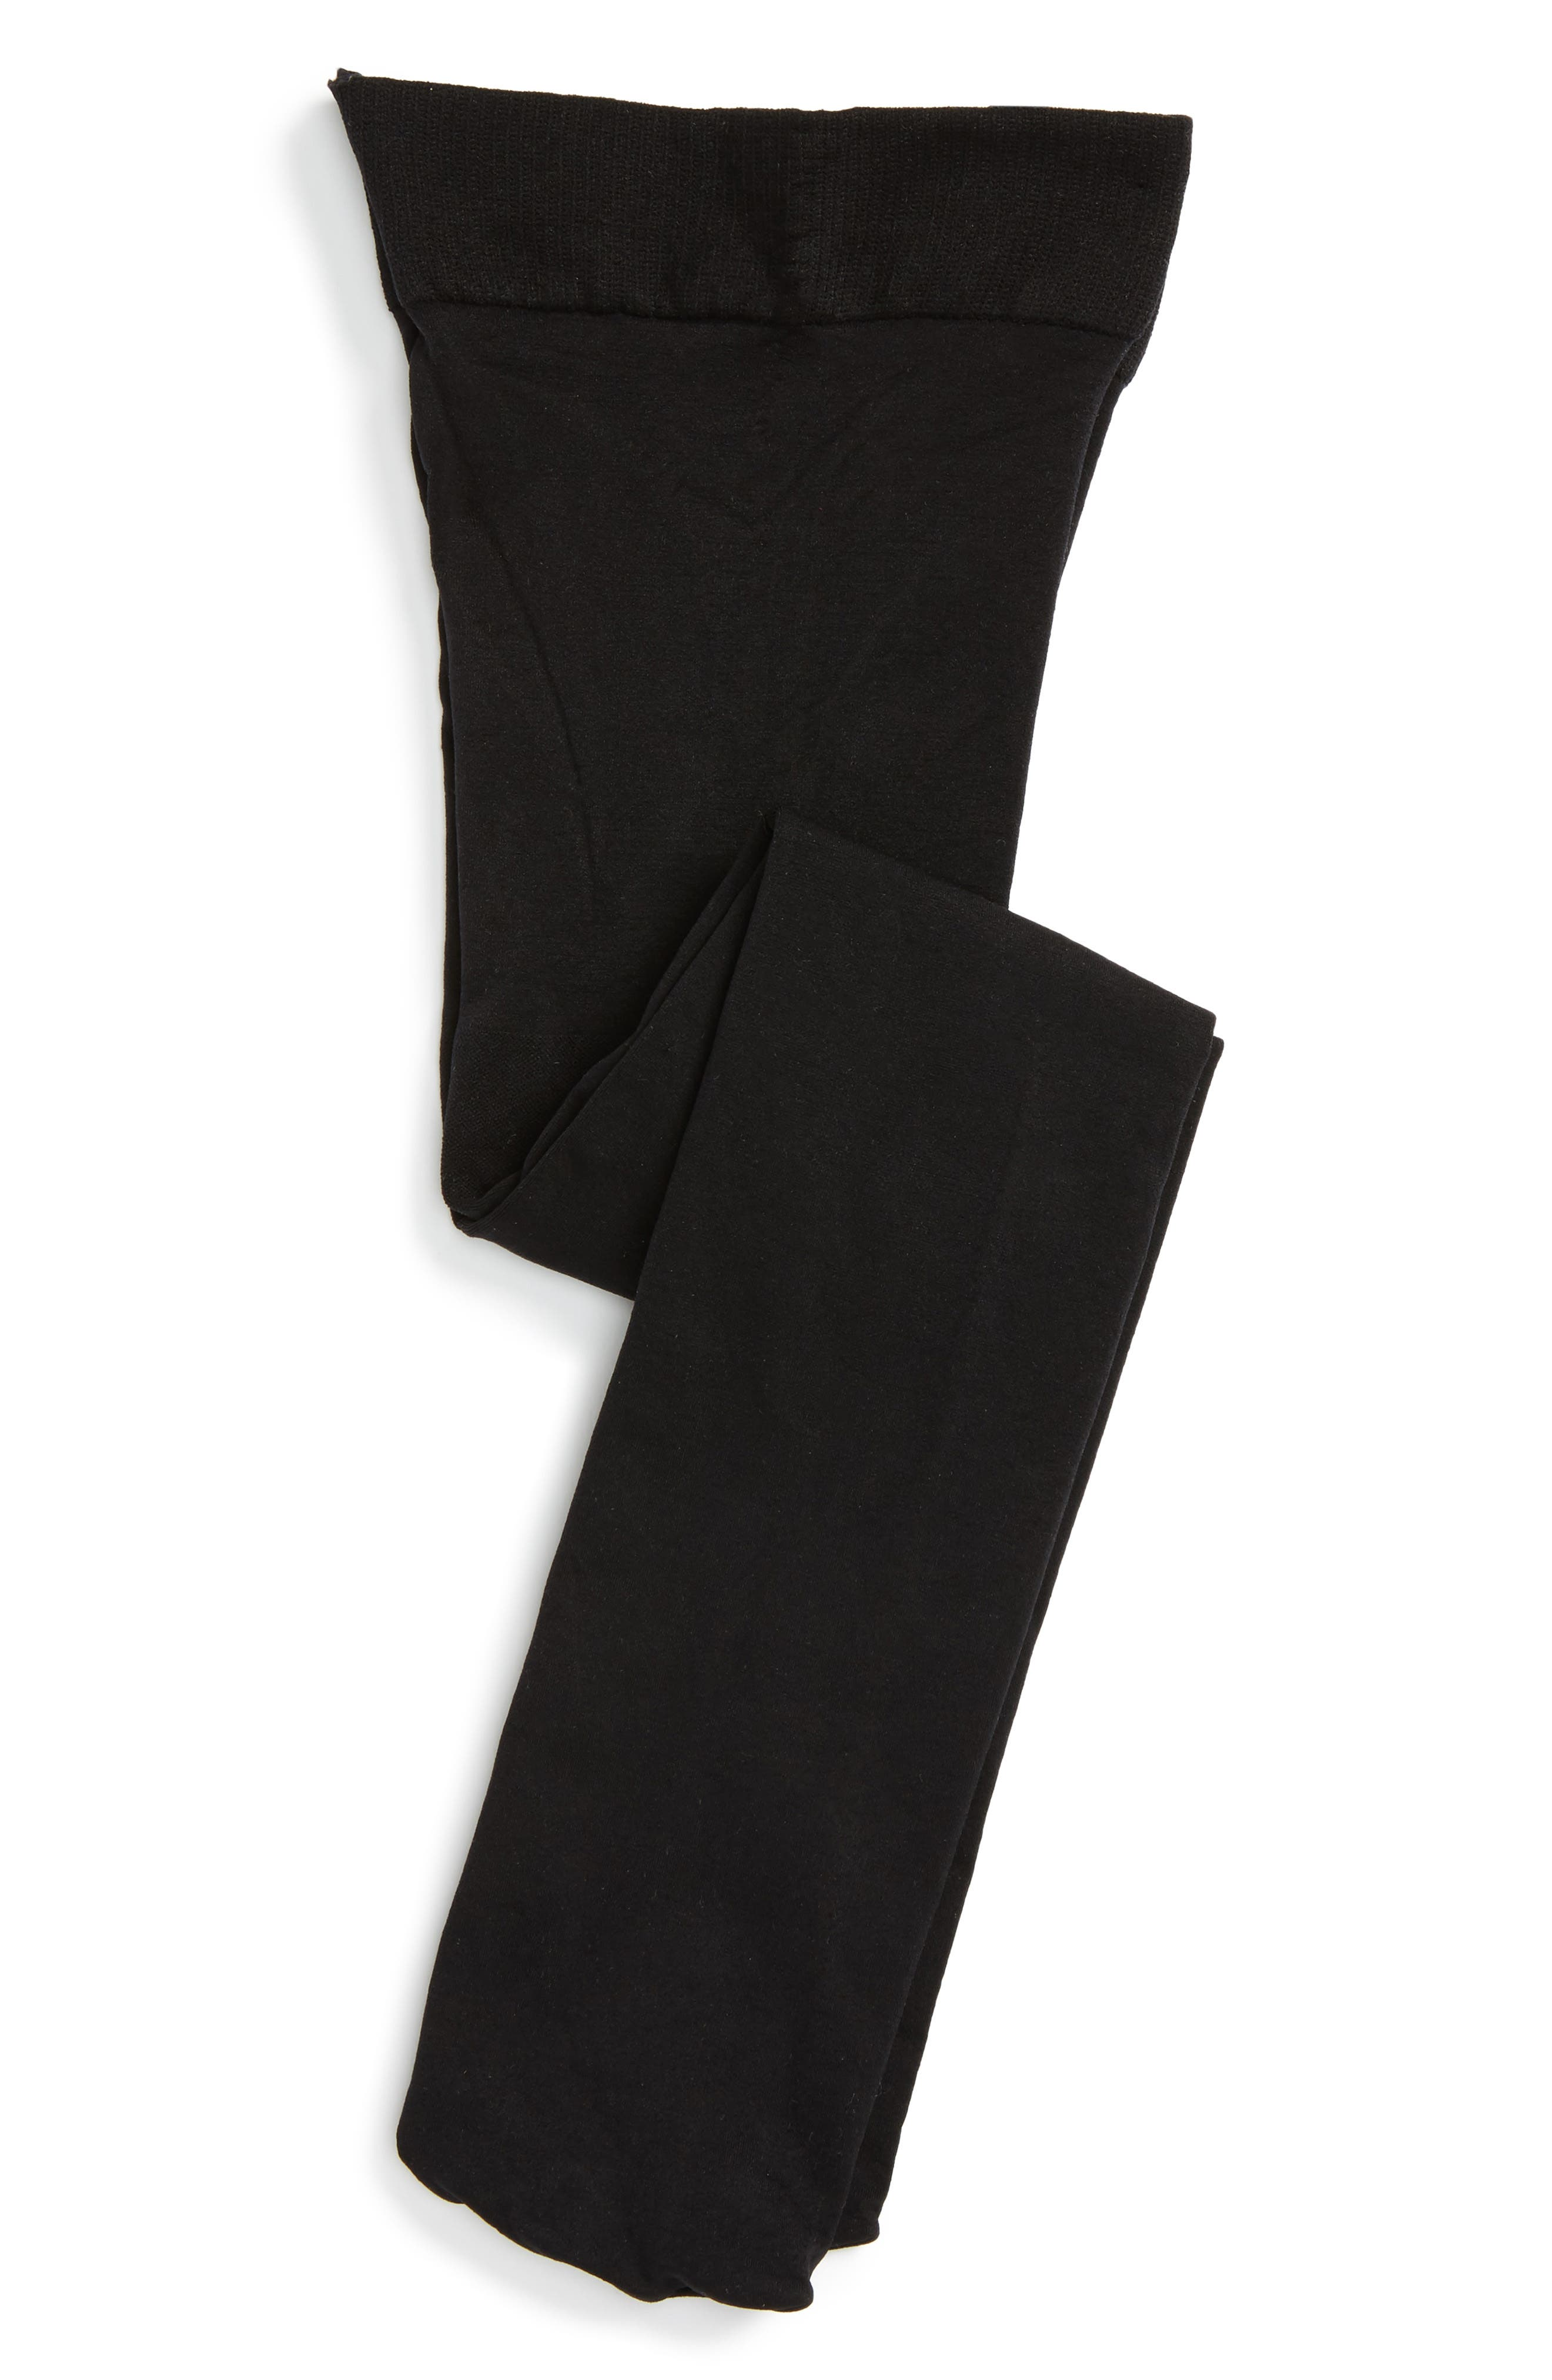 Ruby & Bloom 'So Fine' Microfiber Tights (Toddler Girls, Little Girls & Big Girls) (2 for $15)